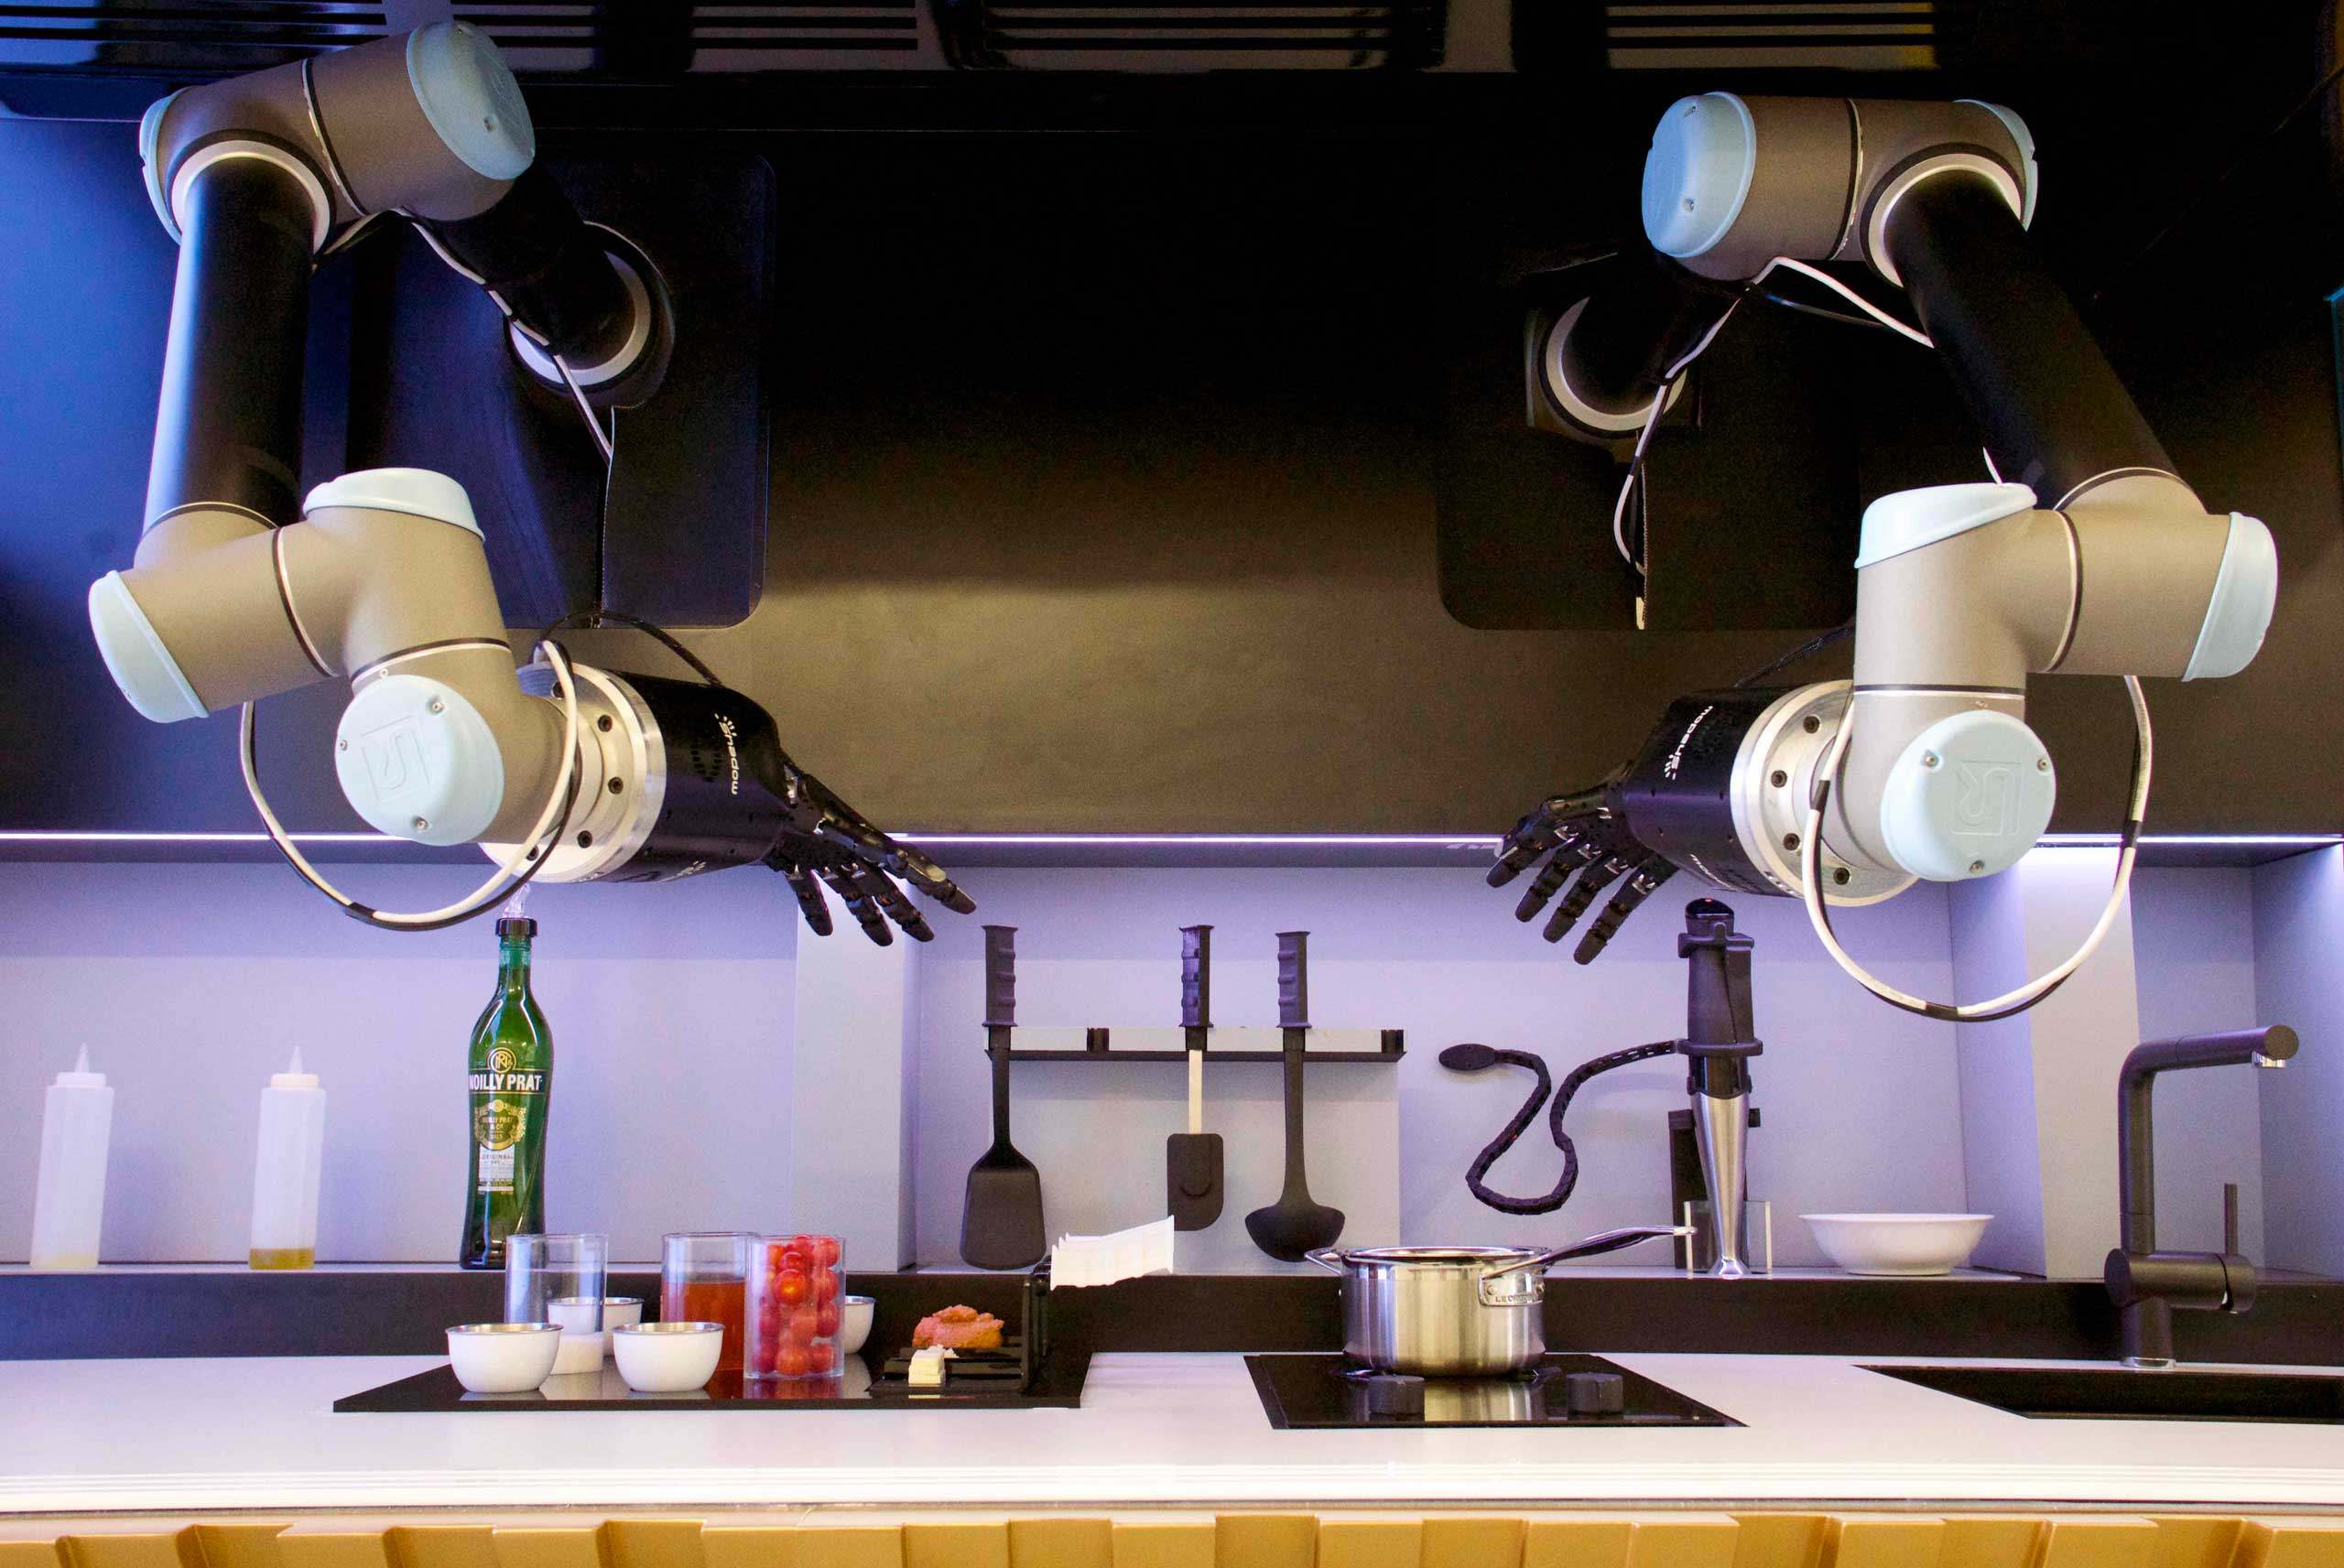 An automated kitchen by Moley Robotics.